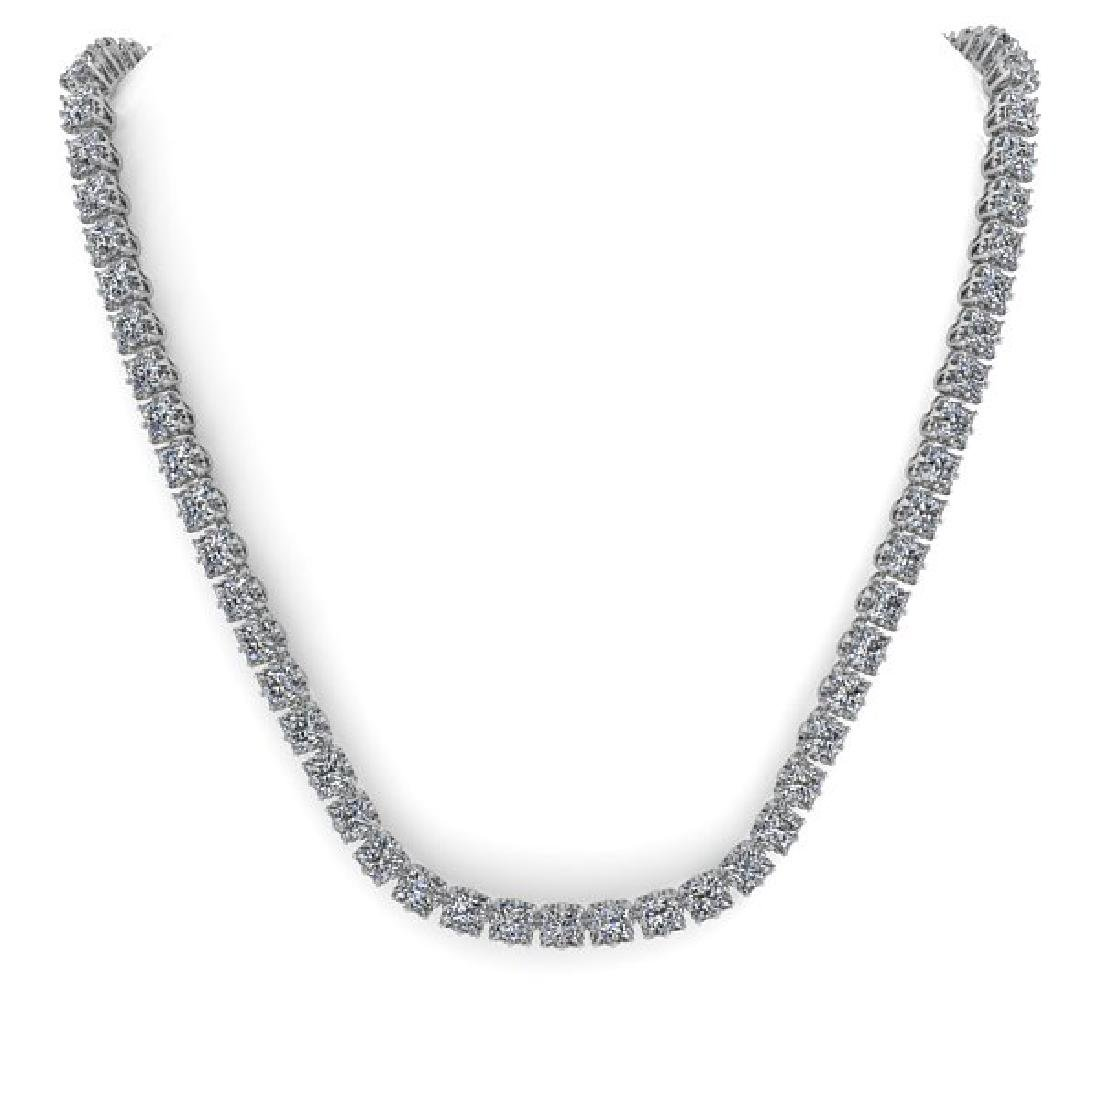 34 CTW Cushion Cut SI Certified Diamond Necklace 14K - 3